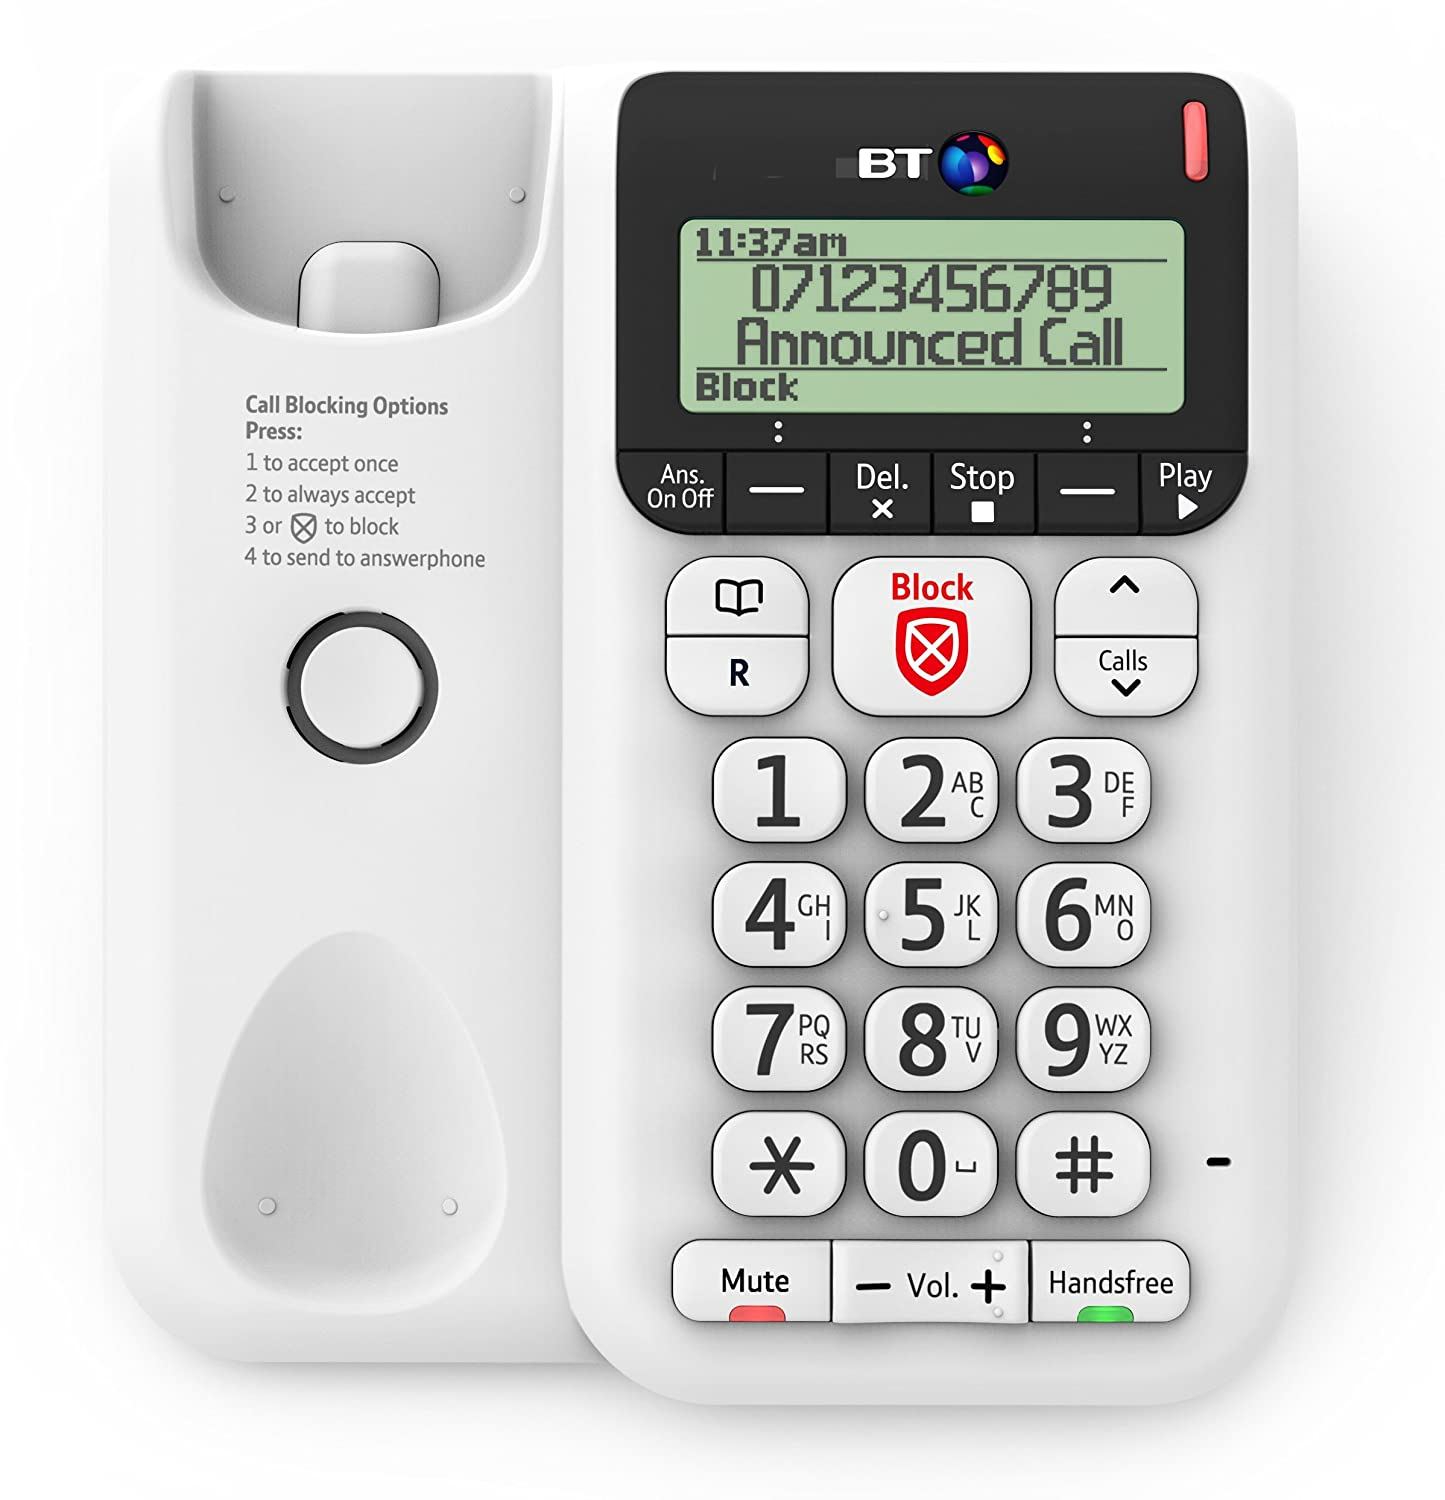 Bt Decor 2600 Advanced Call Blocker Corded Telephone: Amazon:  Electronics